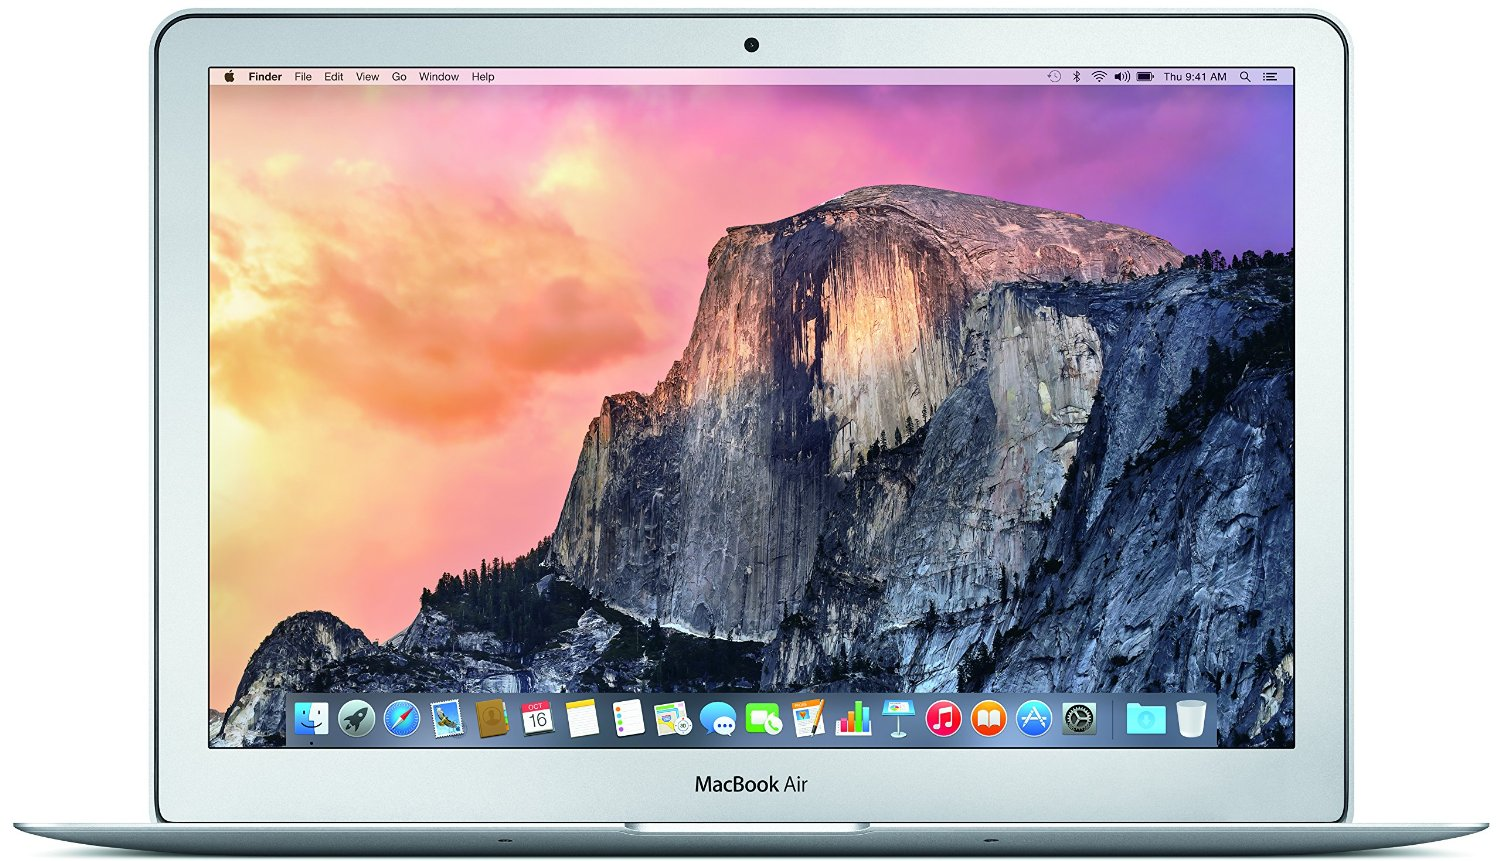 Apple MacBook Pro 13-inch 2015 - Overall Best Laptop for College Students